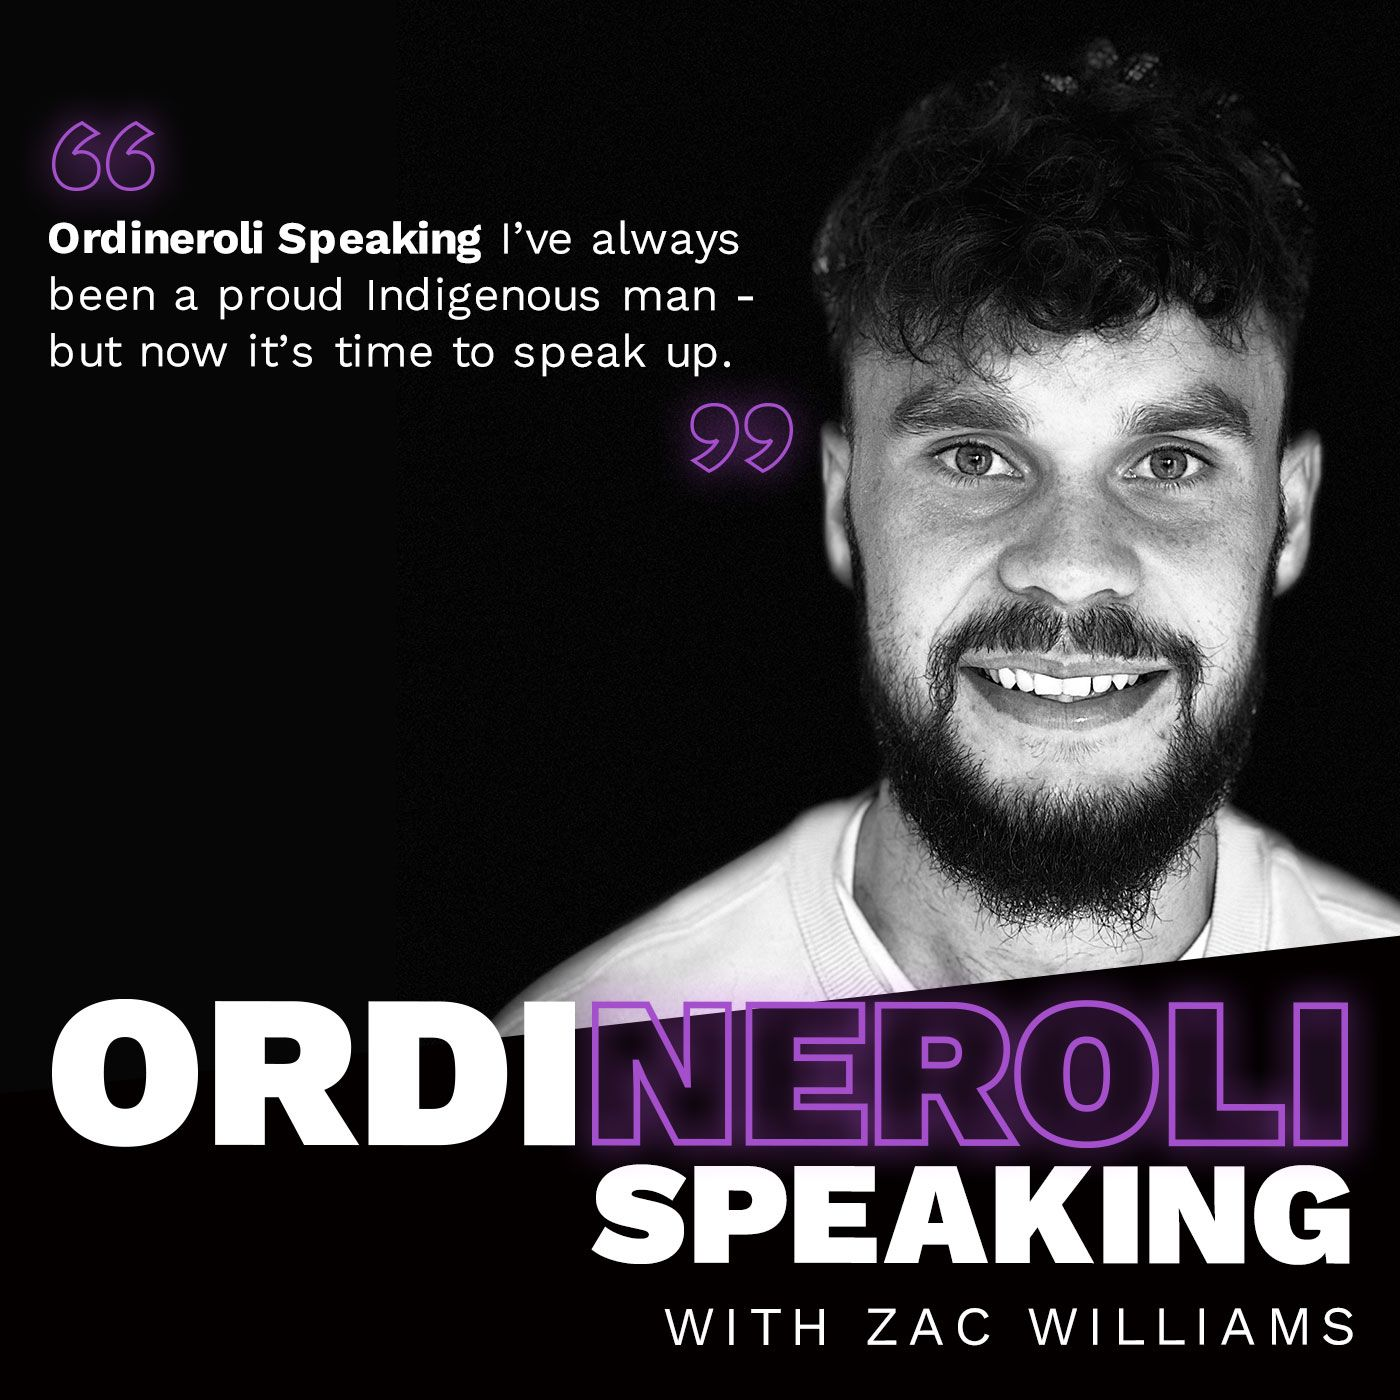 Zac Williams - Ordineroli Speaking